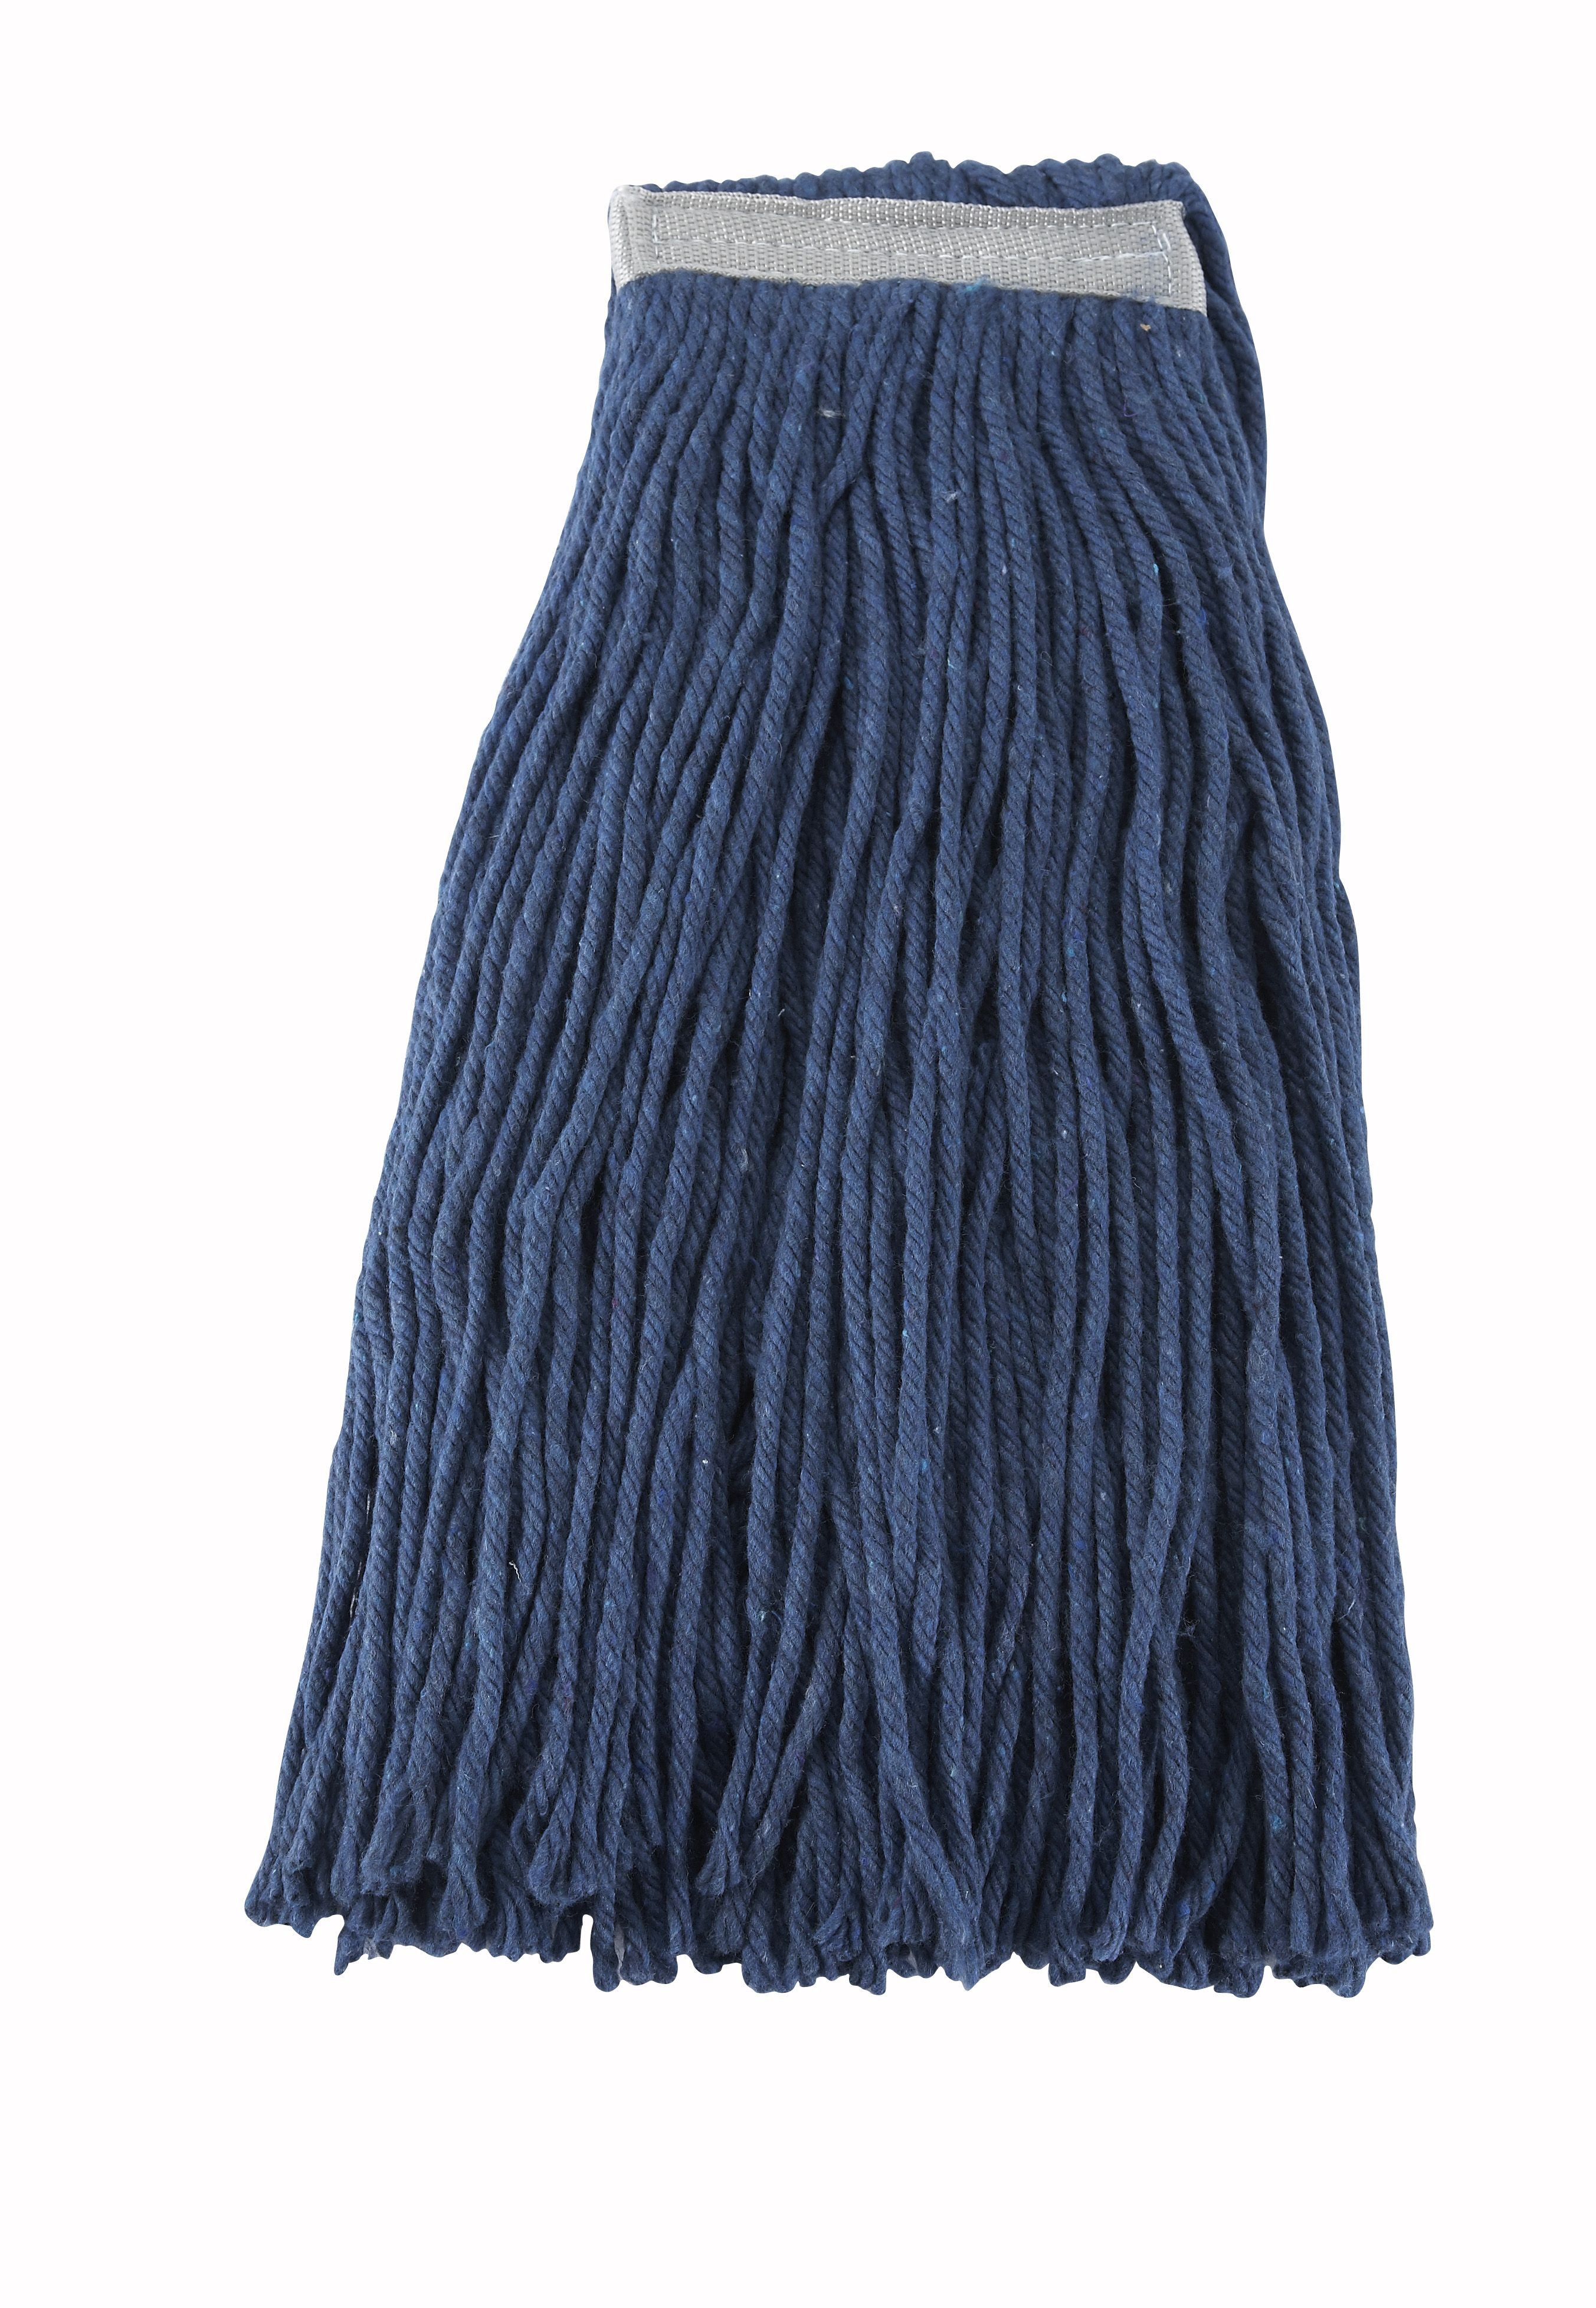 Blue Yarn Cut-End Wet Mop Head 600g 24 oz.